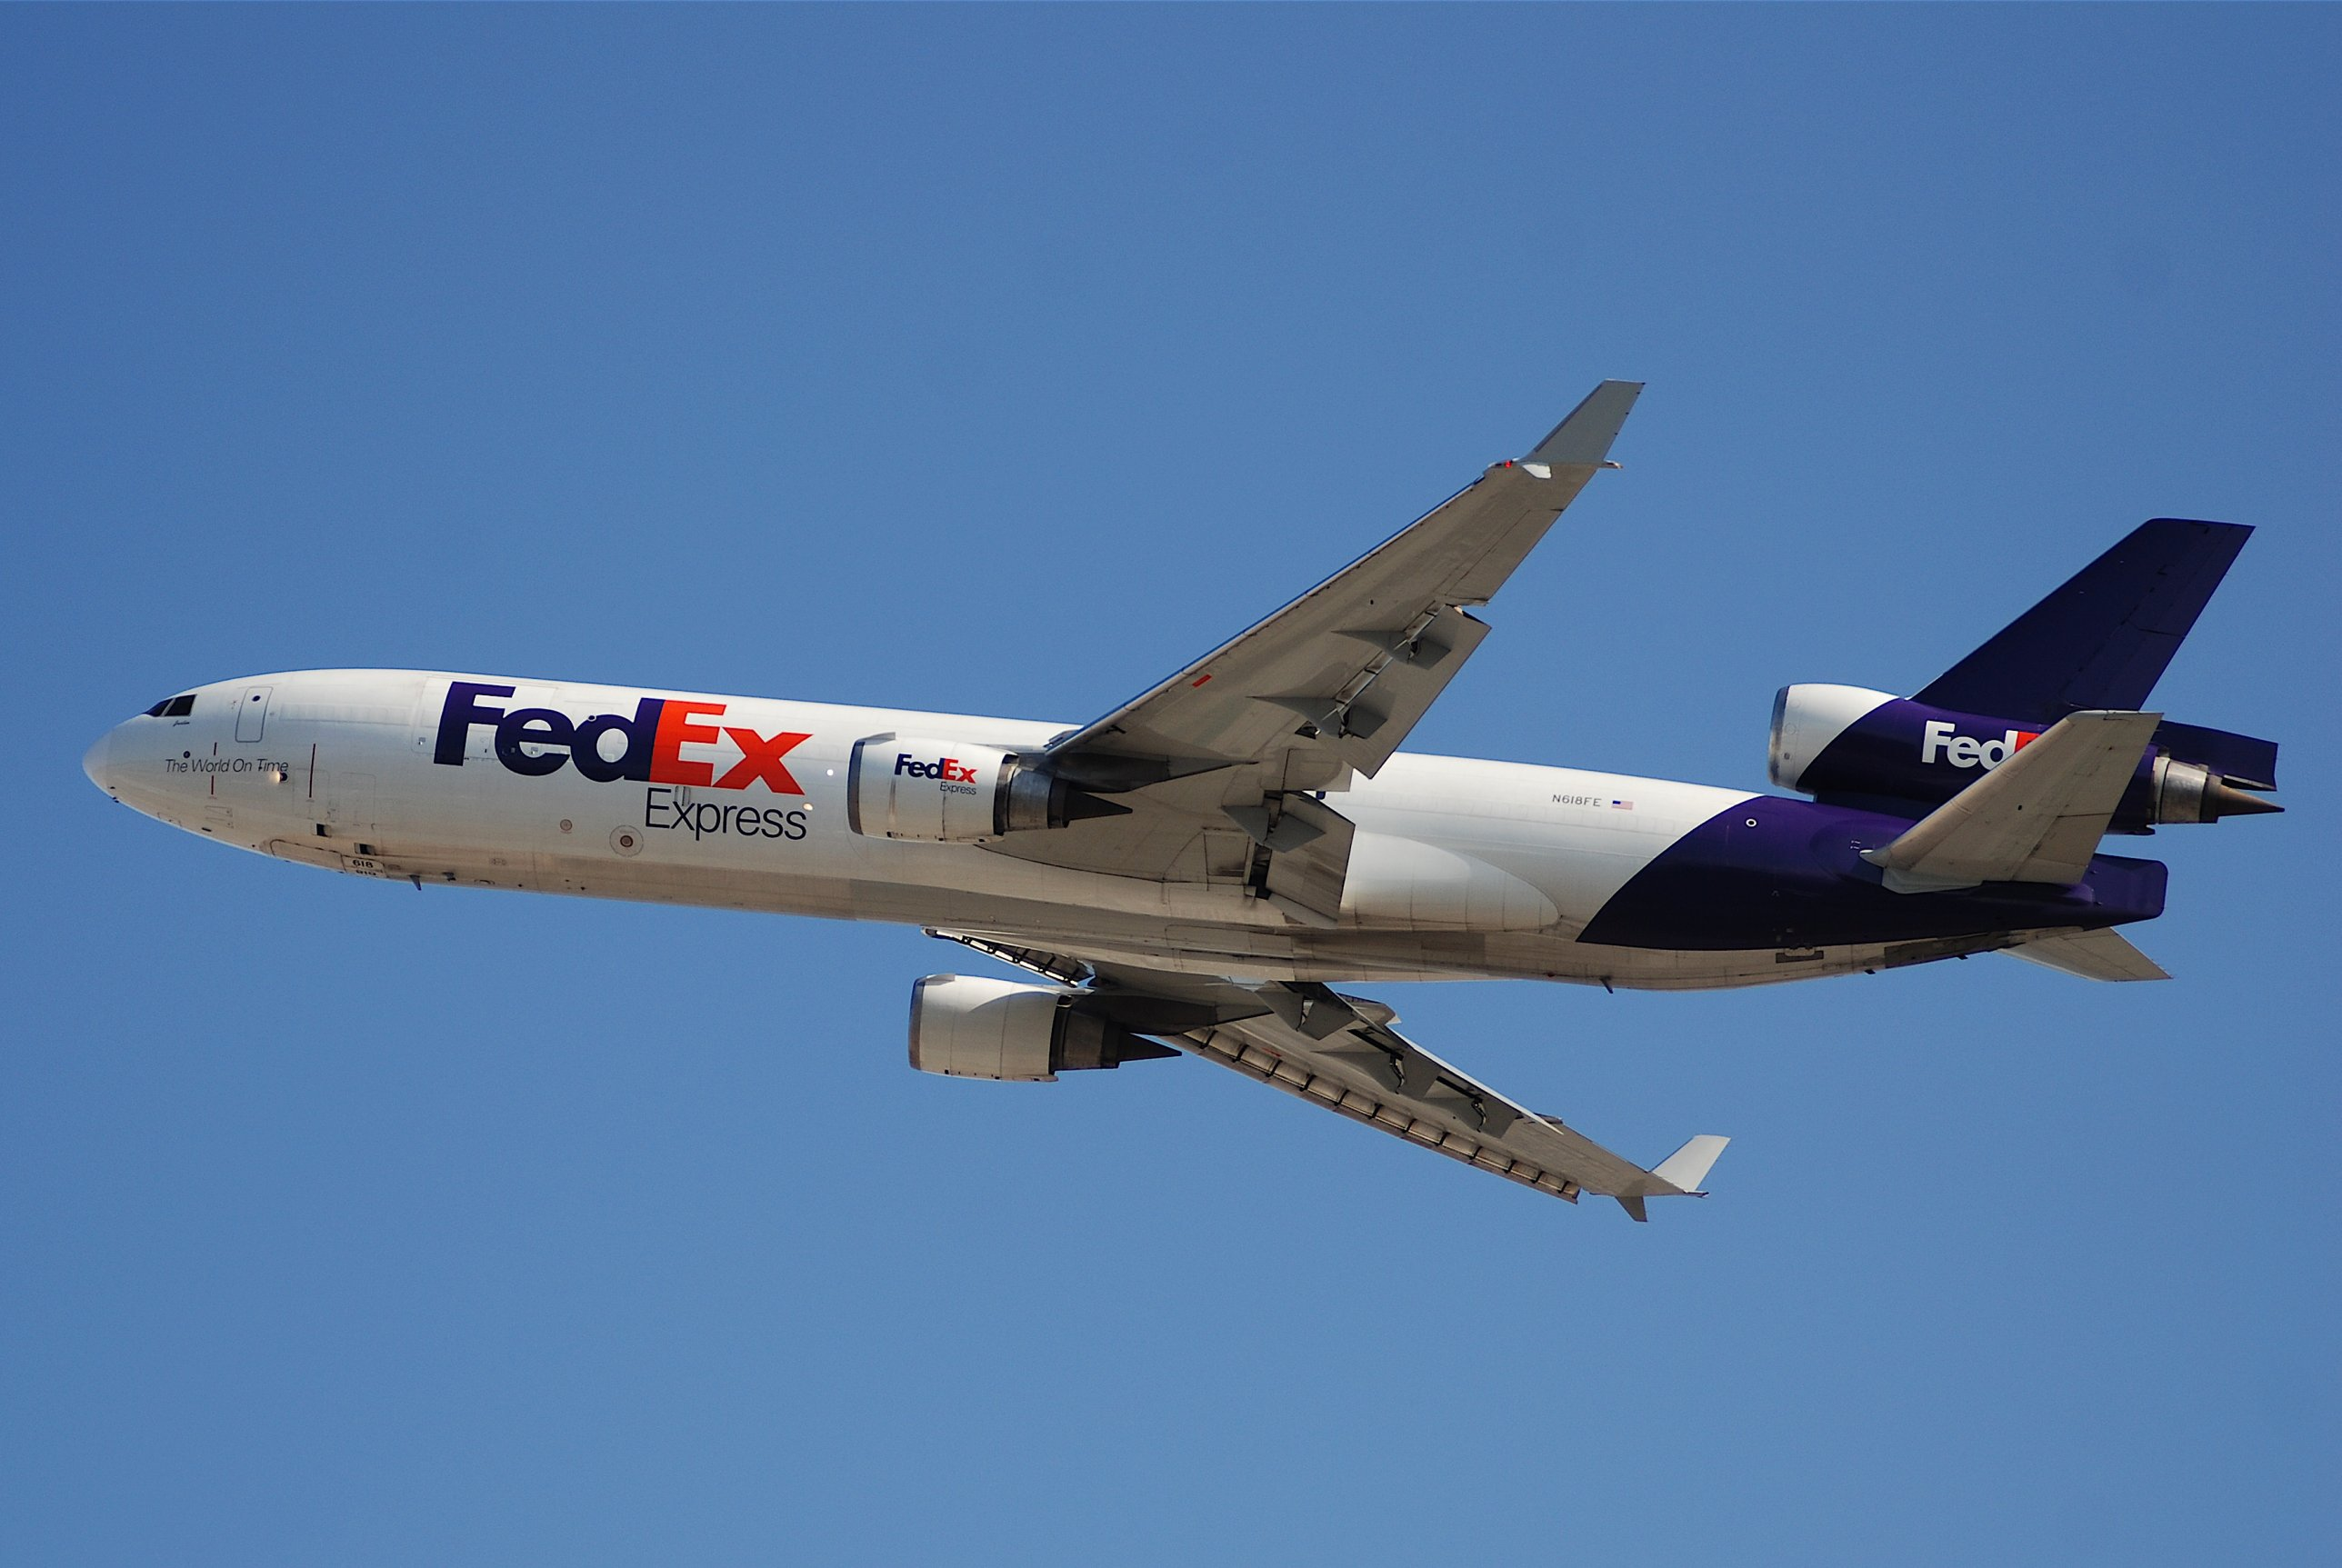 FedEx Express MD-11F Departing from LAX